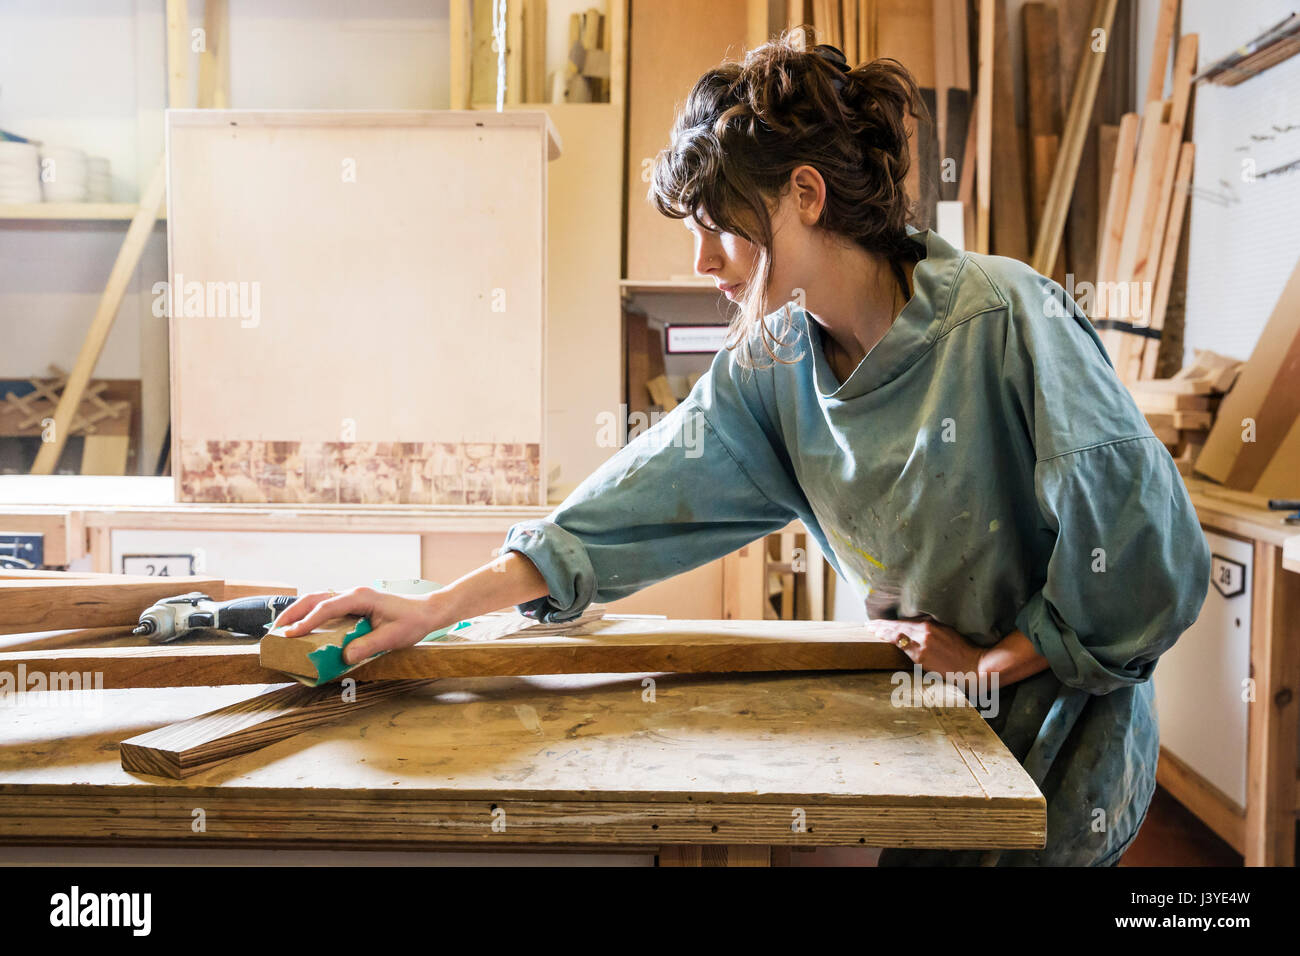 Young woman sanding wood in a workshop Stock Photo